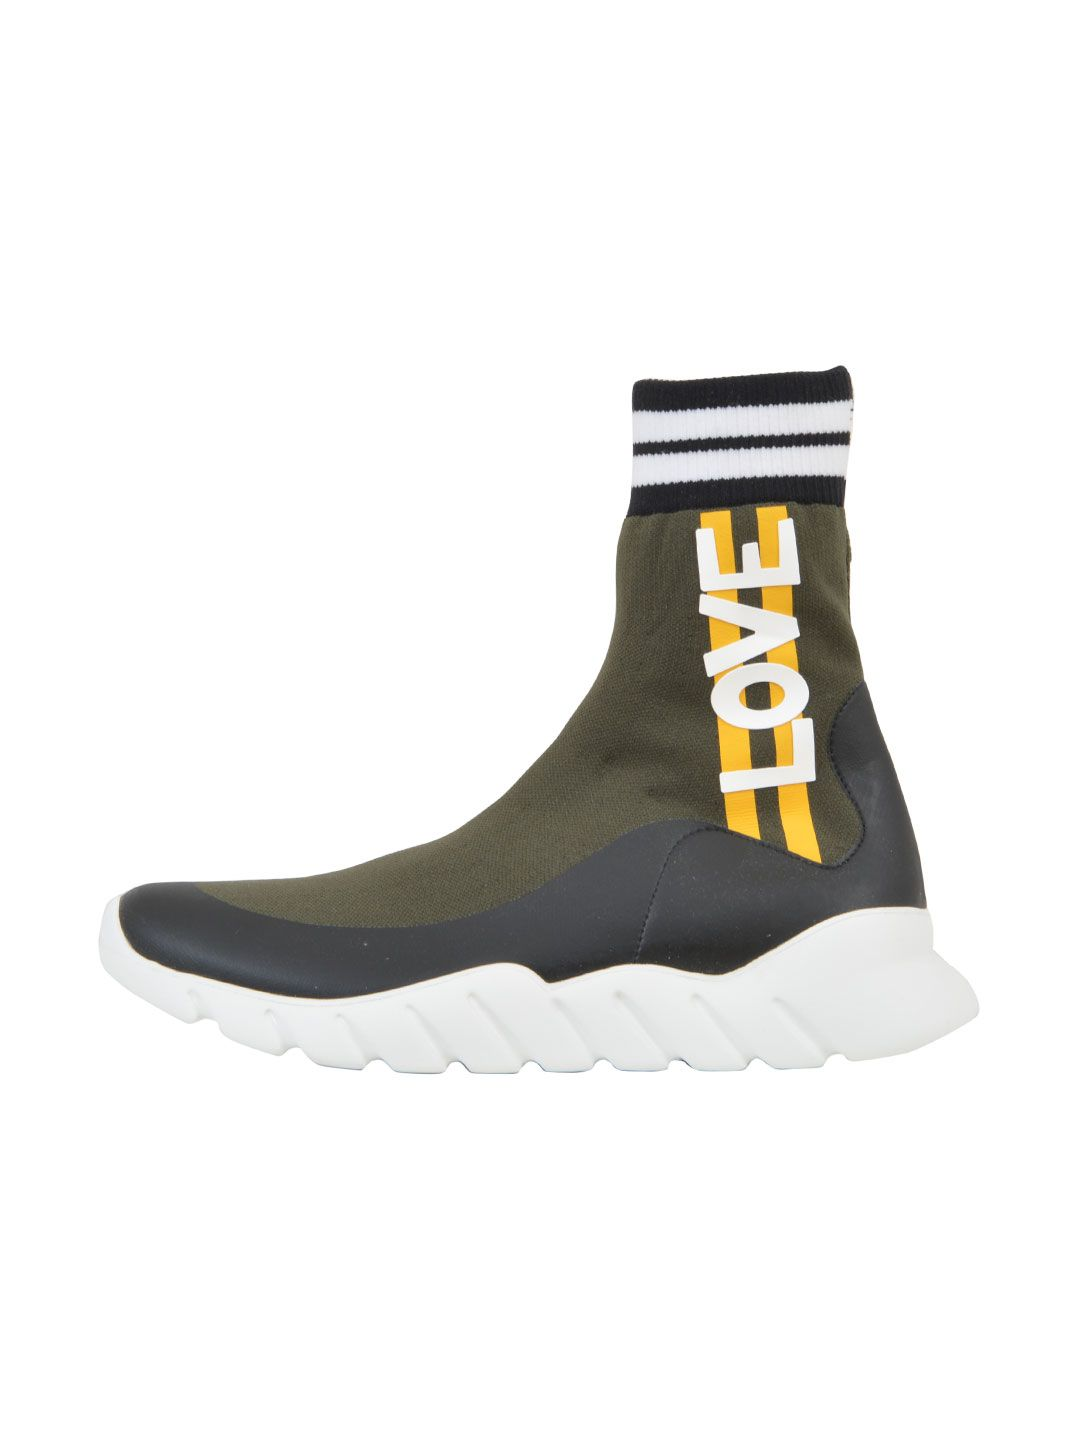 Fendi Knit High-top